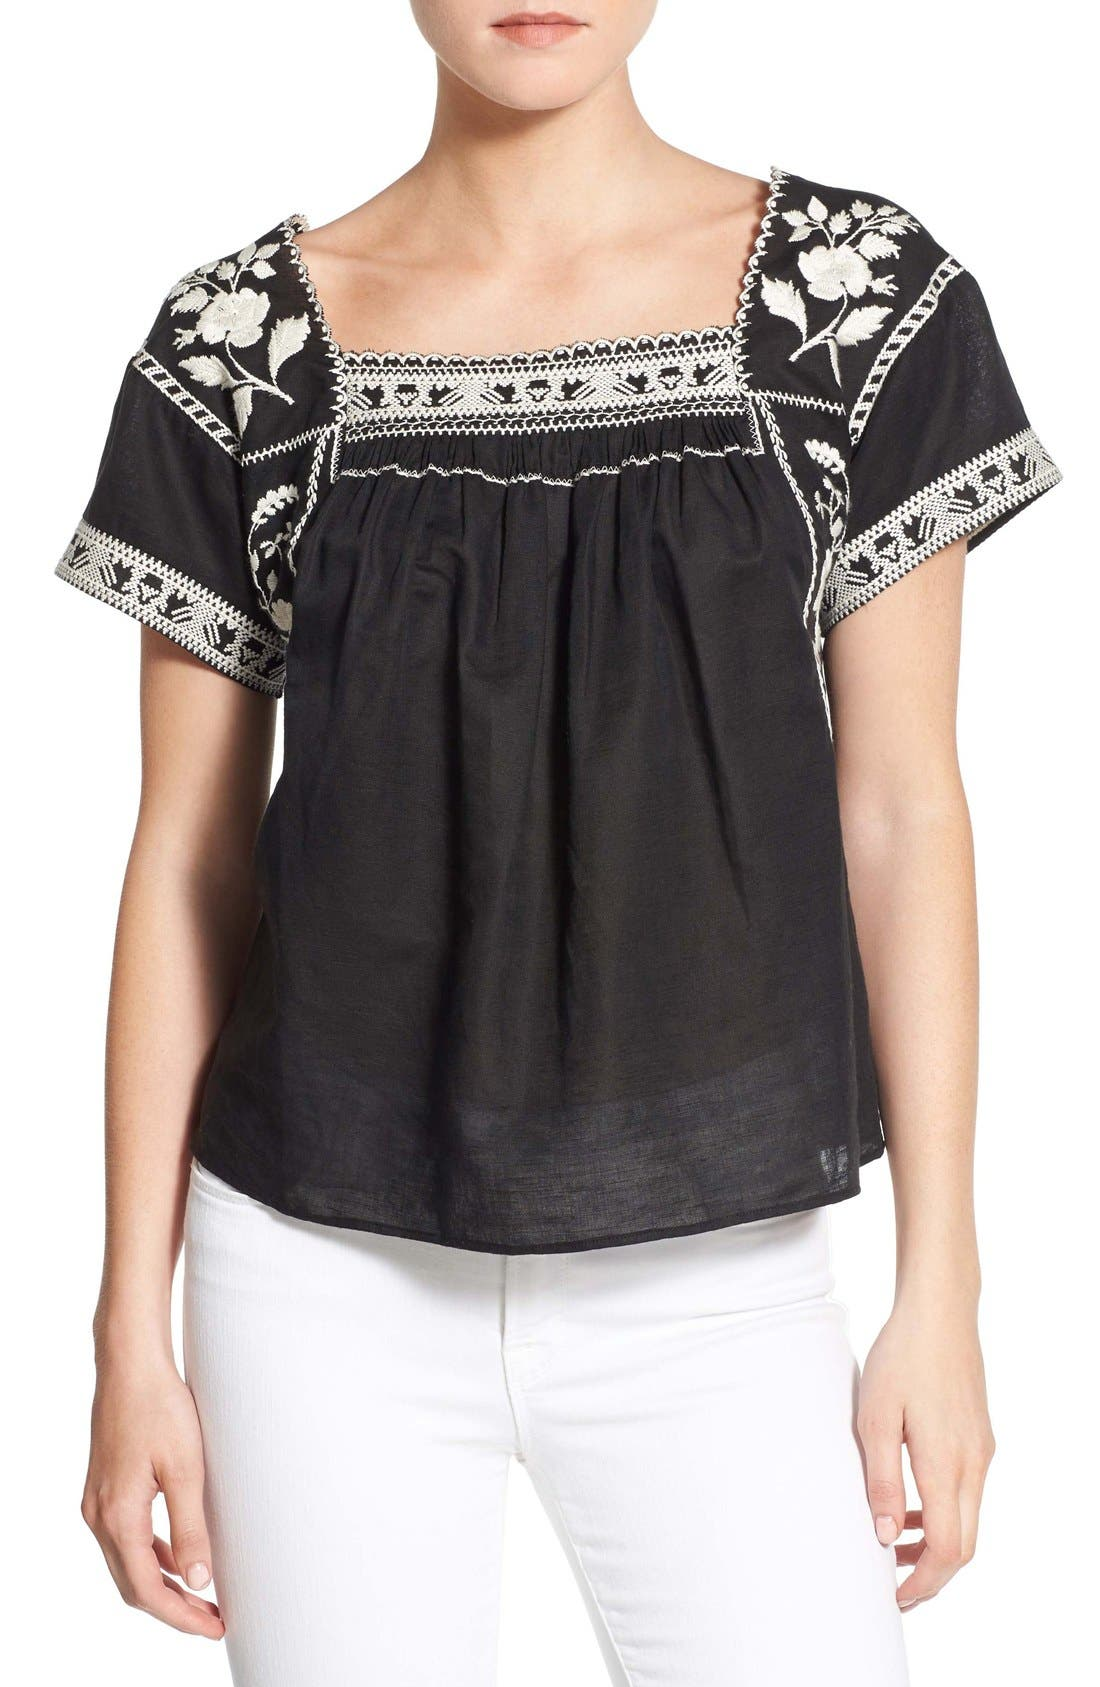 Wildfield Embroidered Top,                         Main,                         color, 001